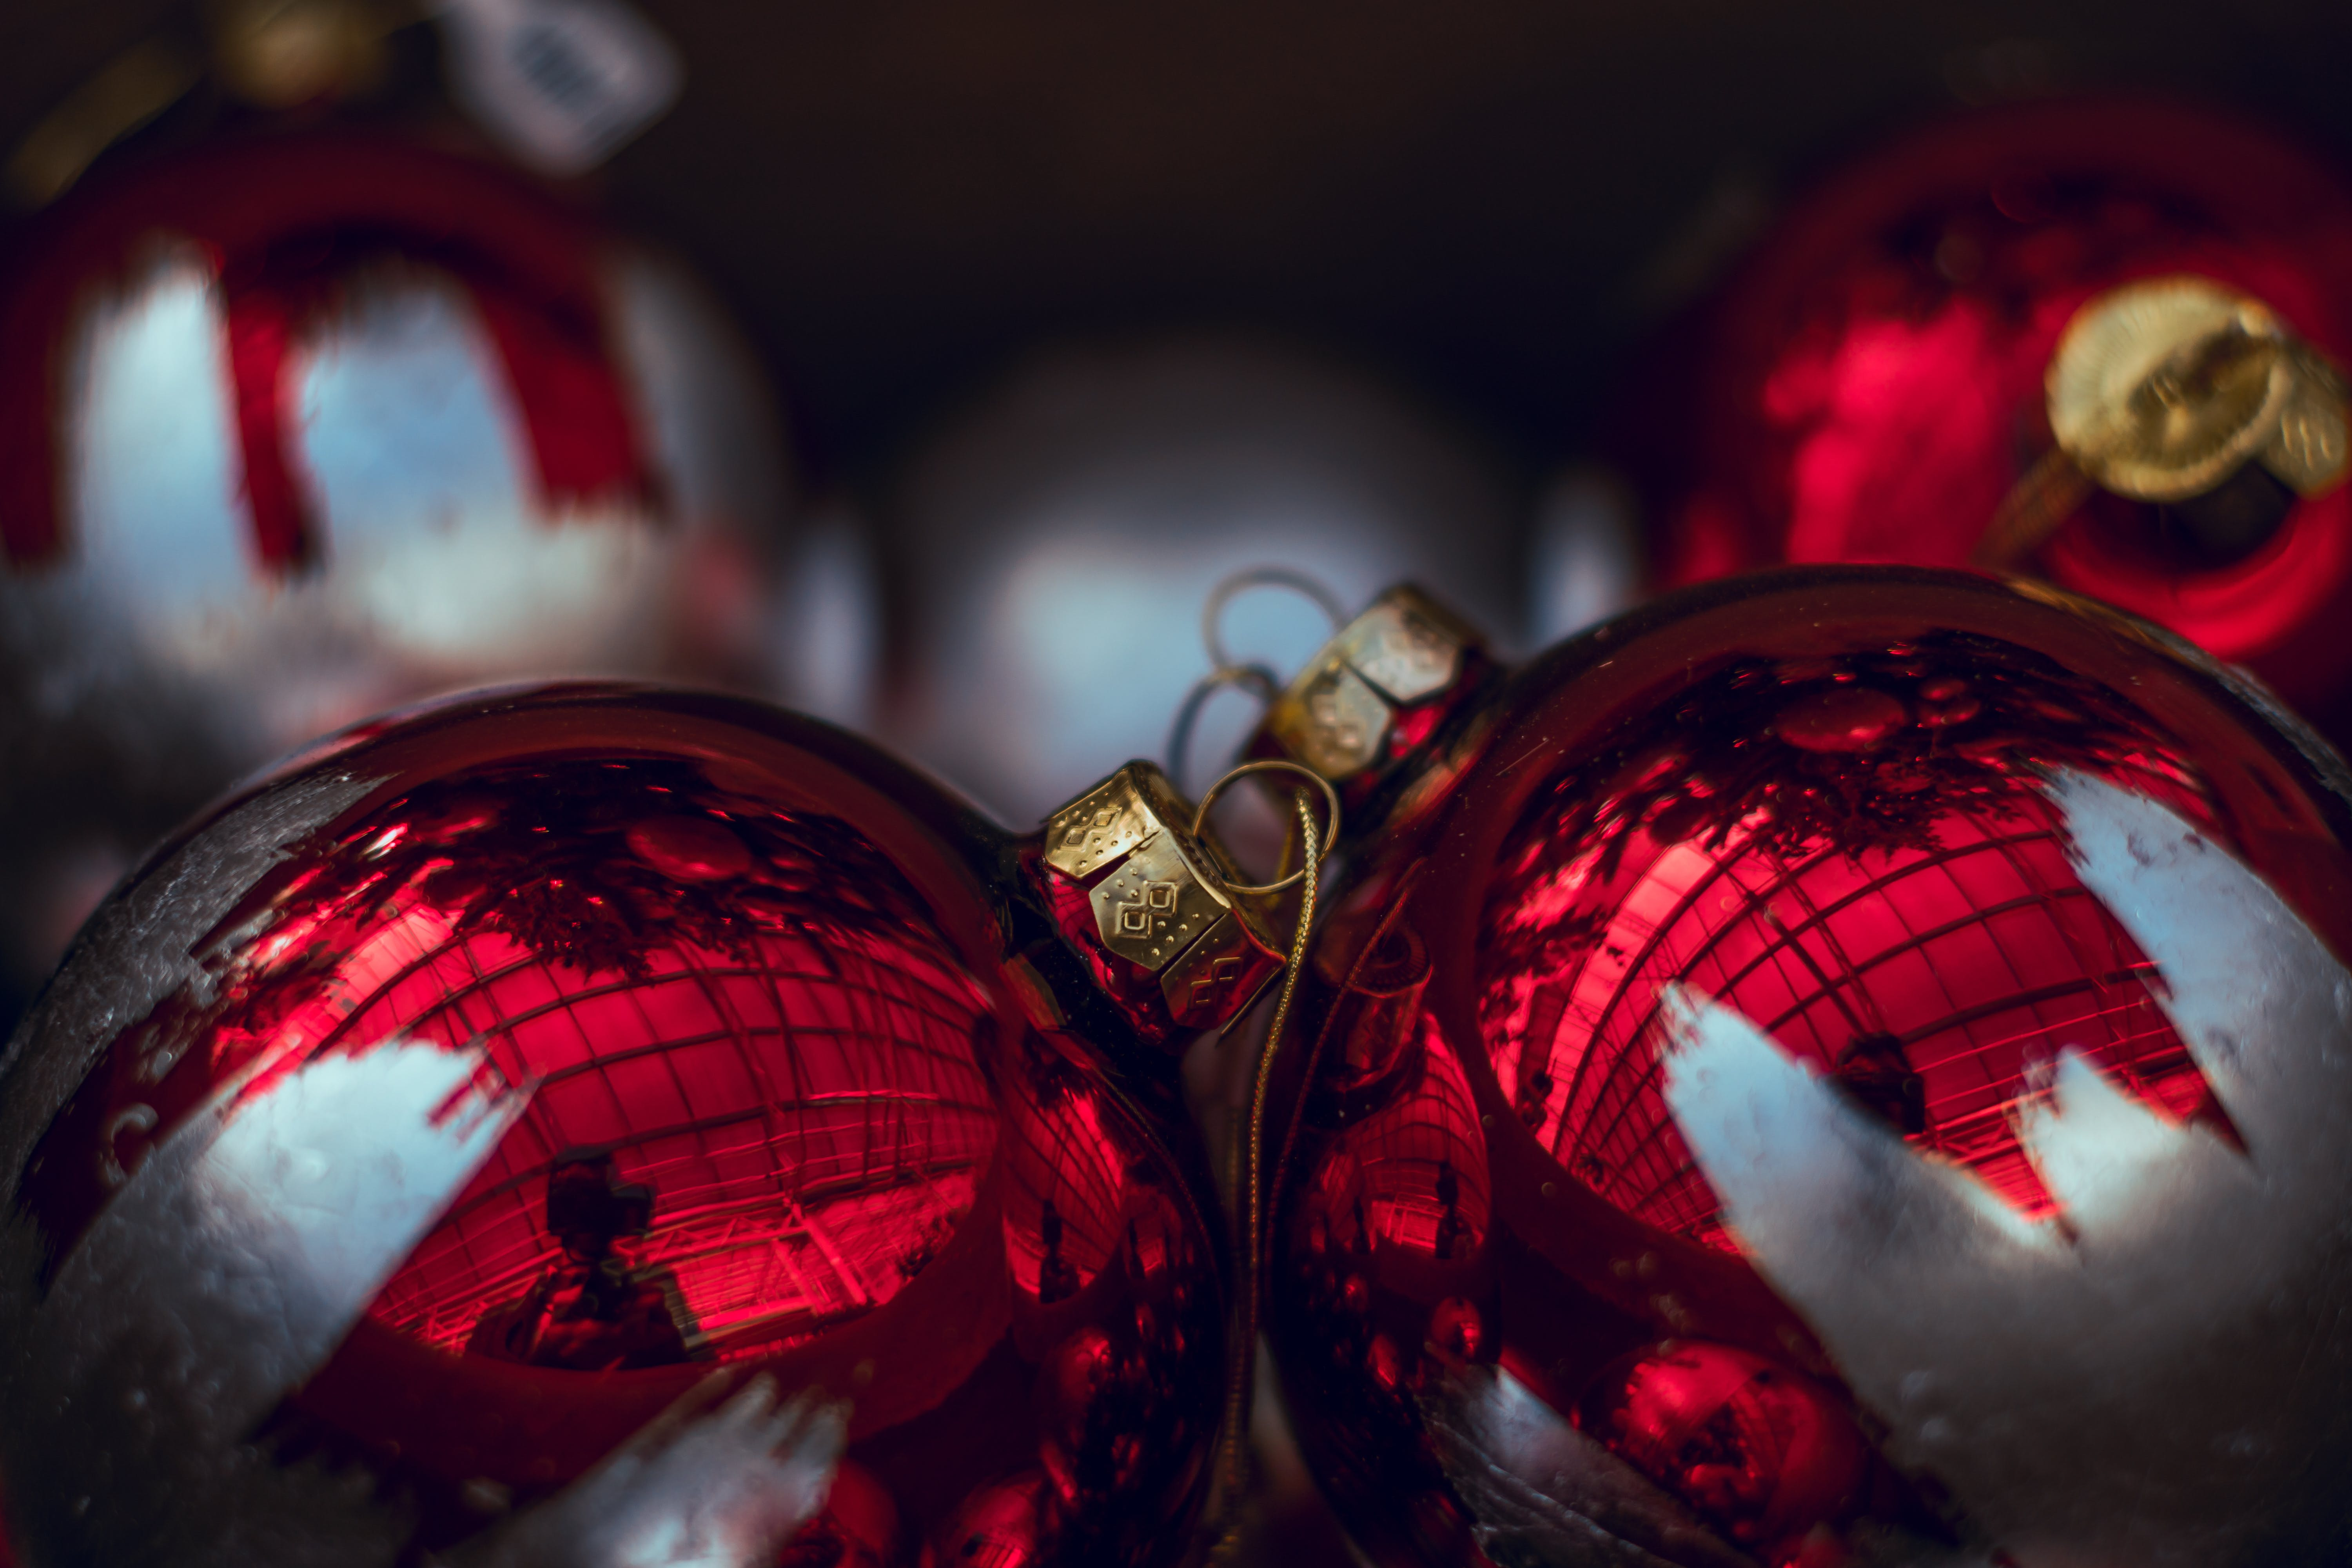 Several Christmas Baubles